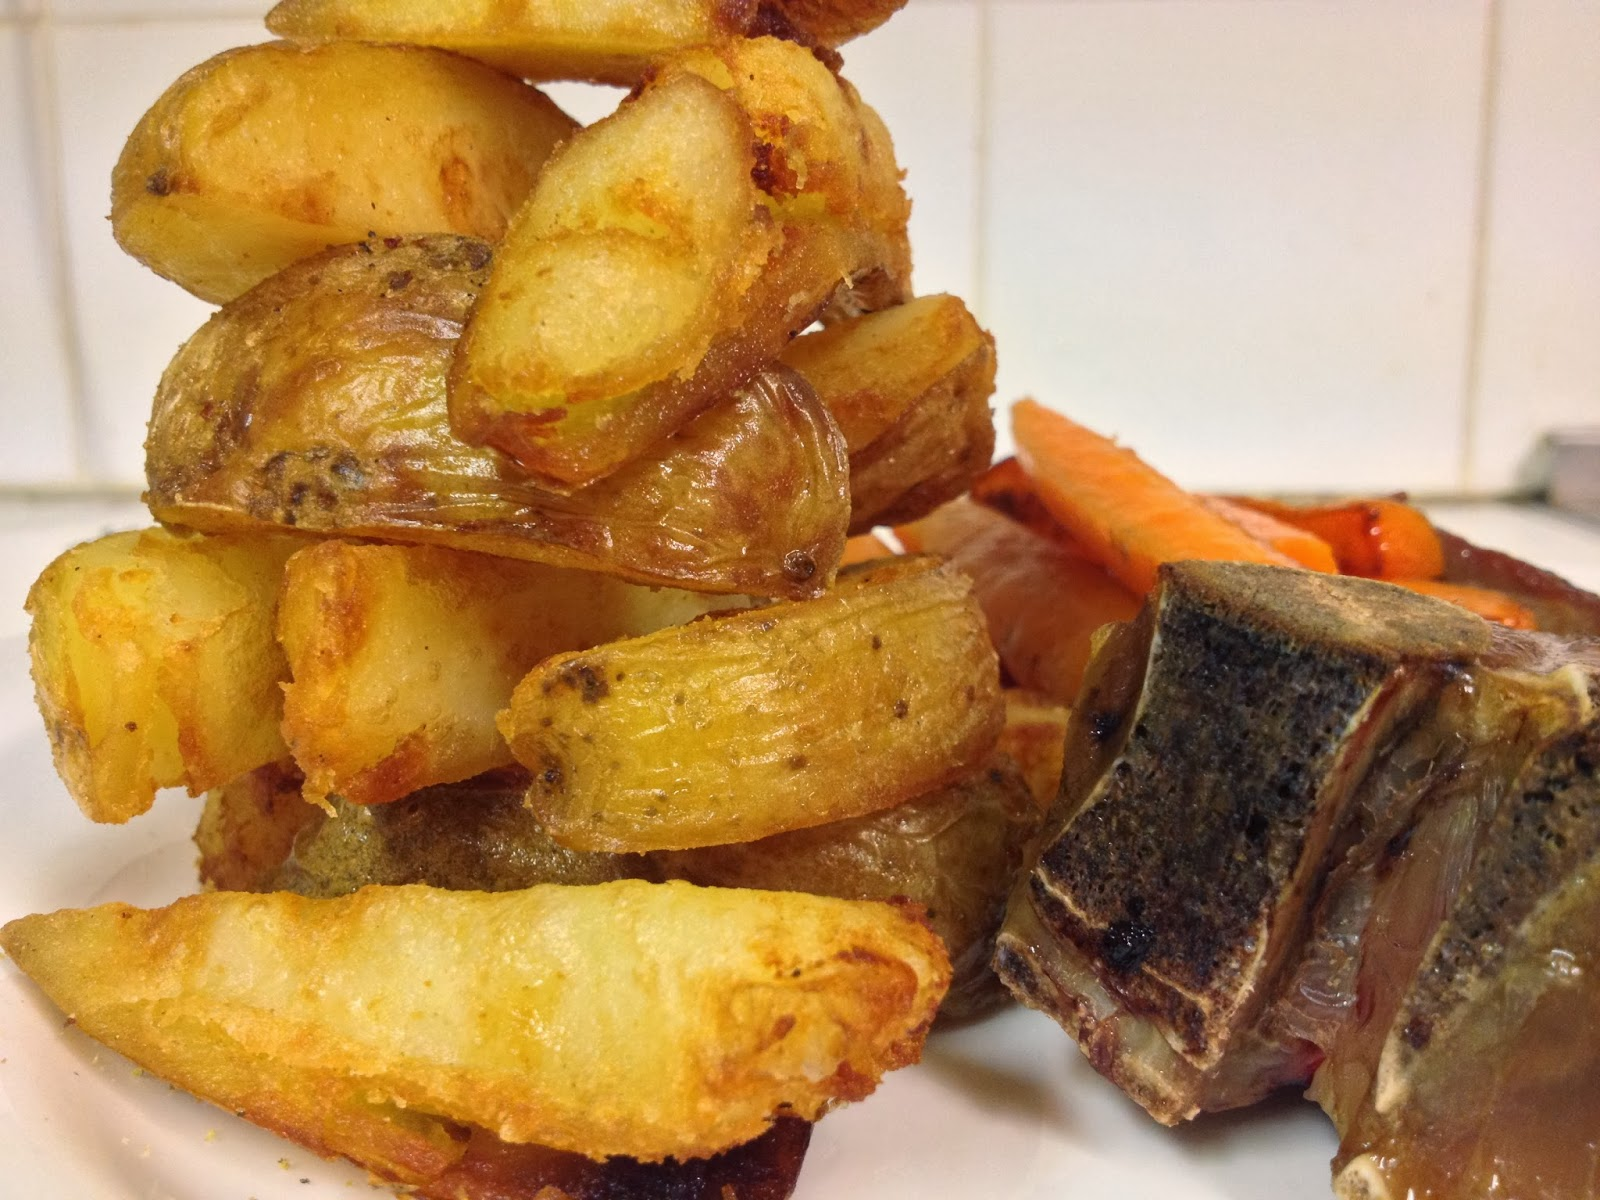 baked potatoes two ways blumenthal s thrice cooked triple cooked chips ...